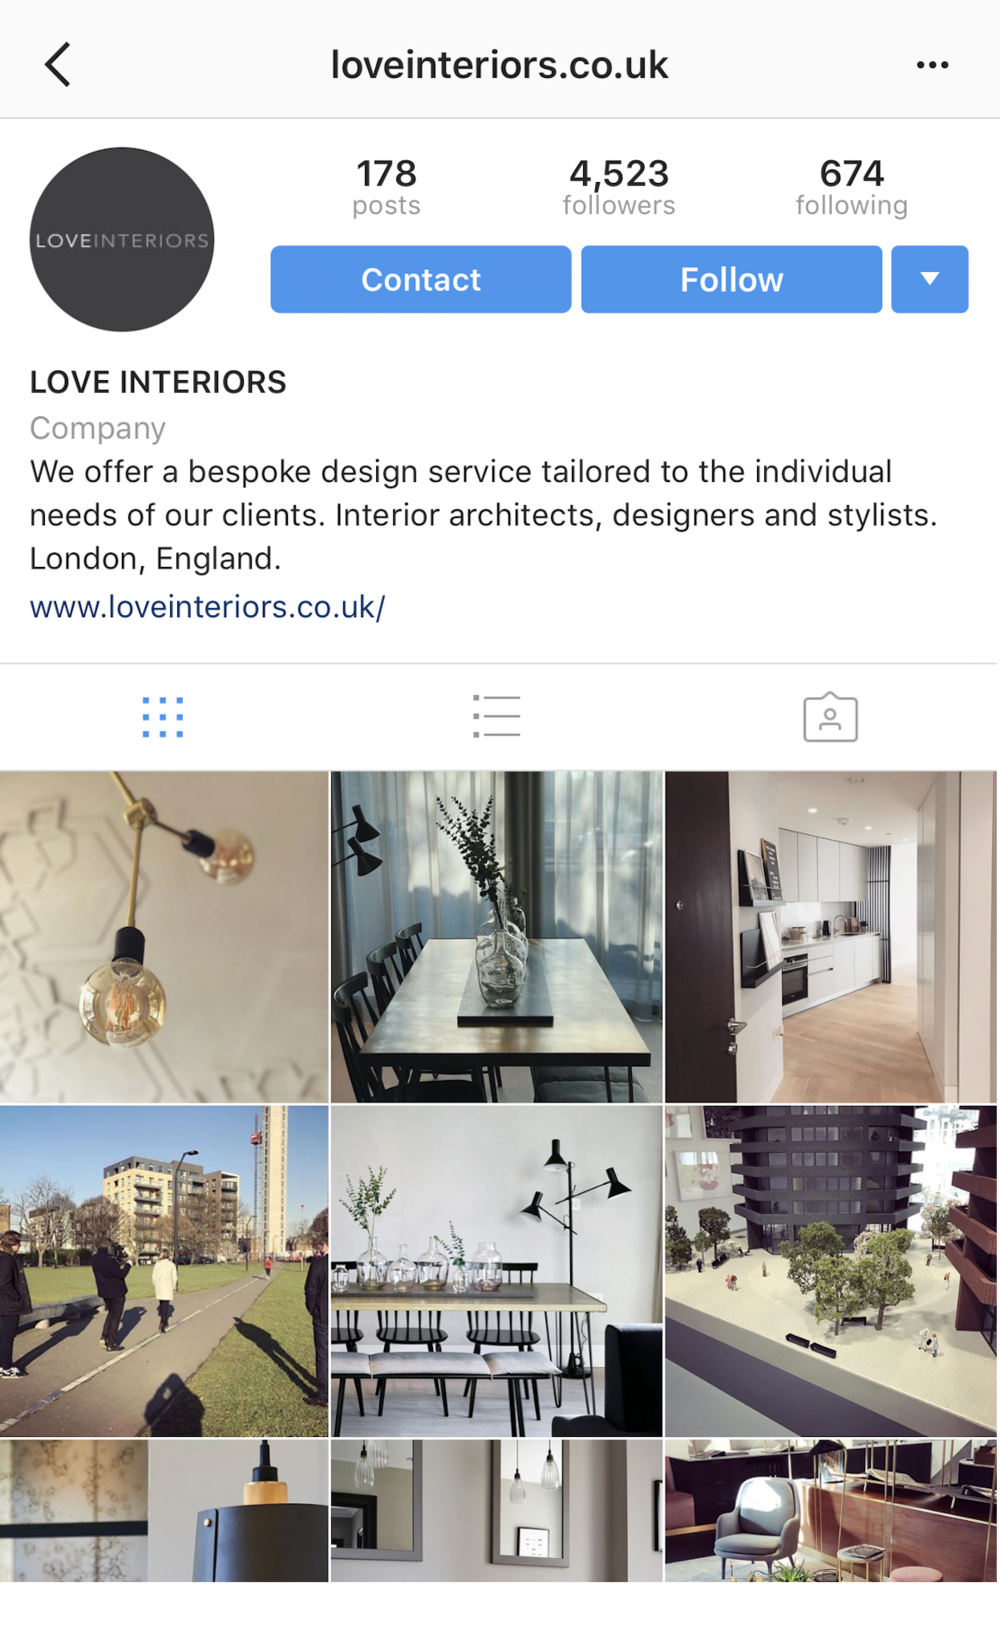 loveinteriors.co.uk